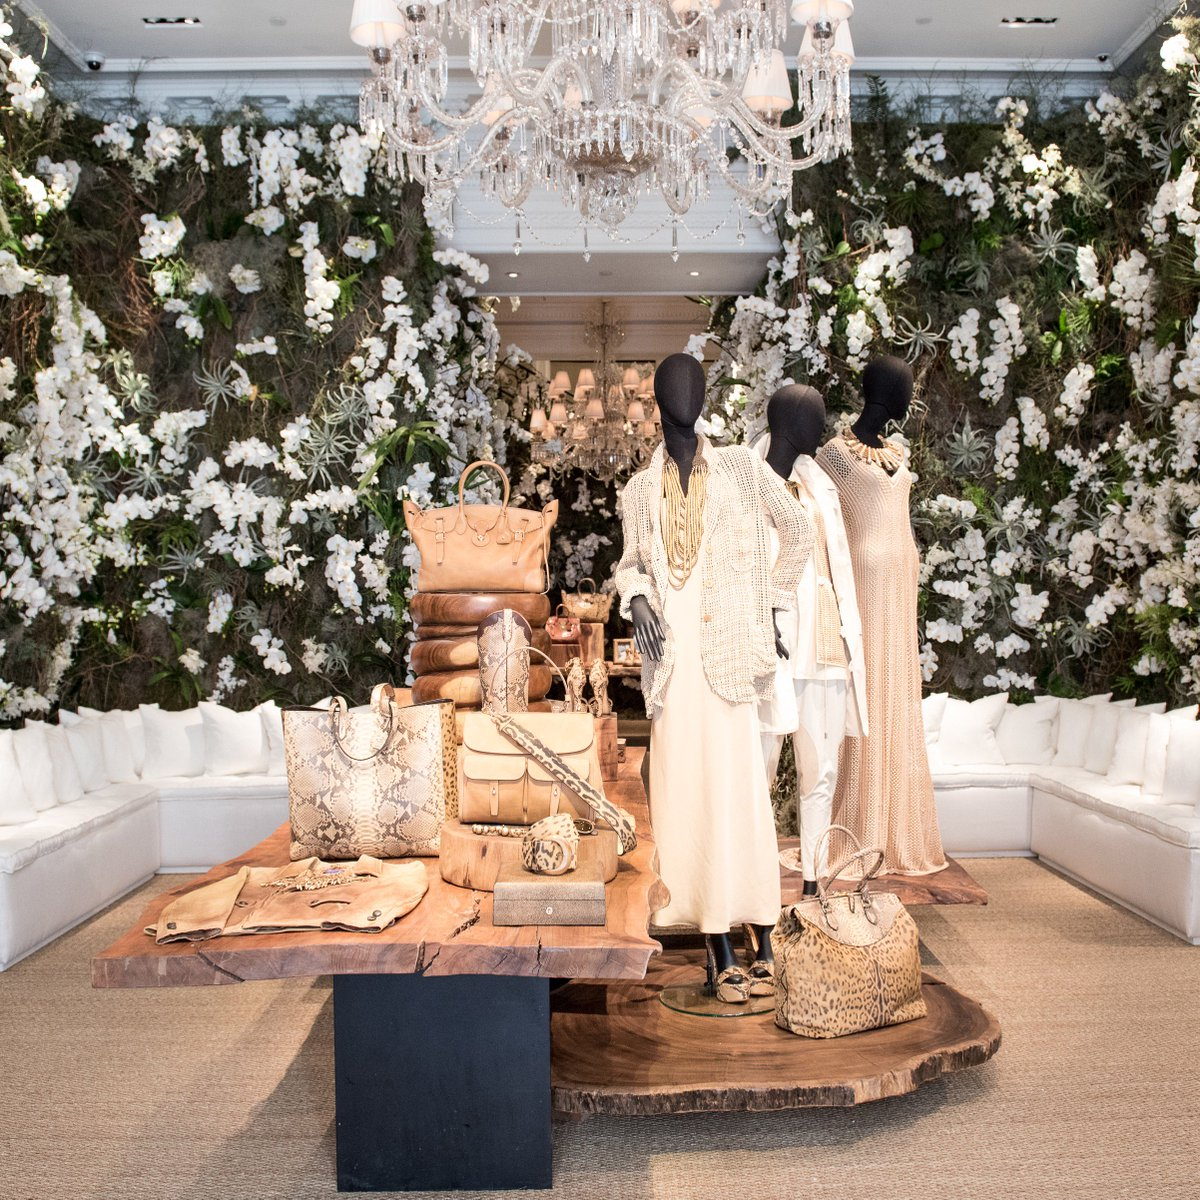 Step inside the transformed 888 Madison Avenue Flagship in #NYC and shop the collection on the runway. https://t.co/2eXtrBIXa5